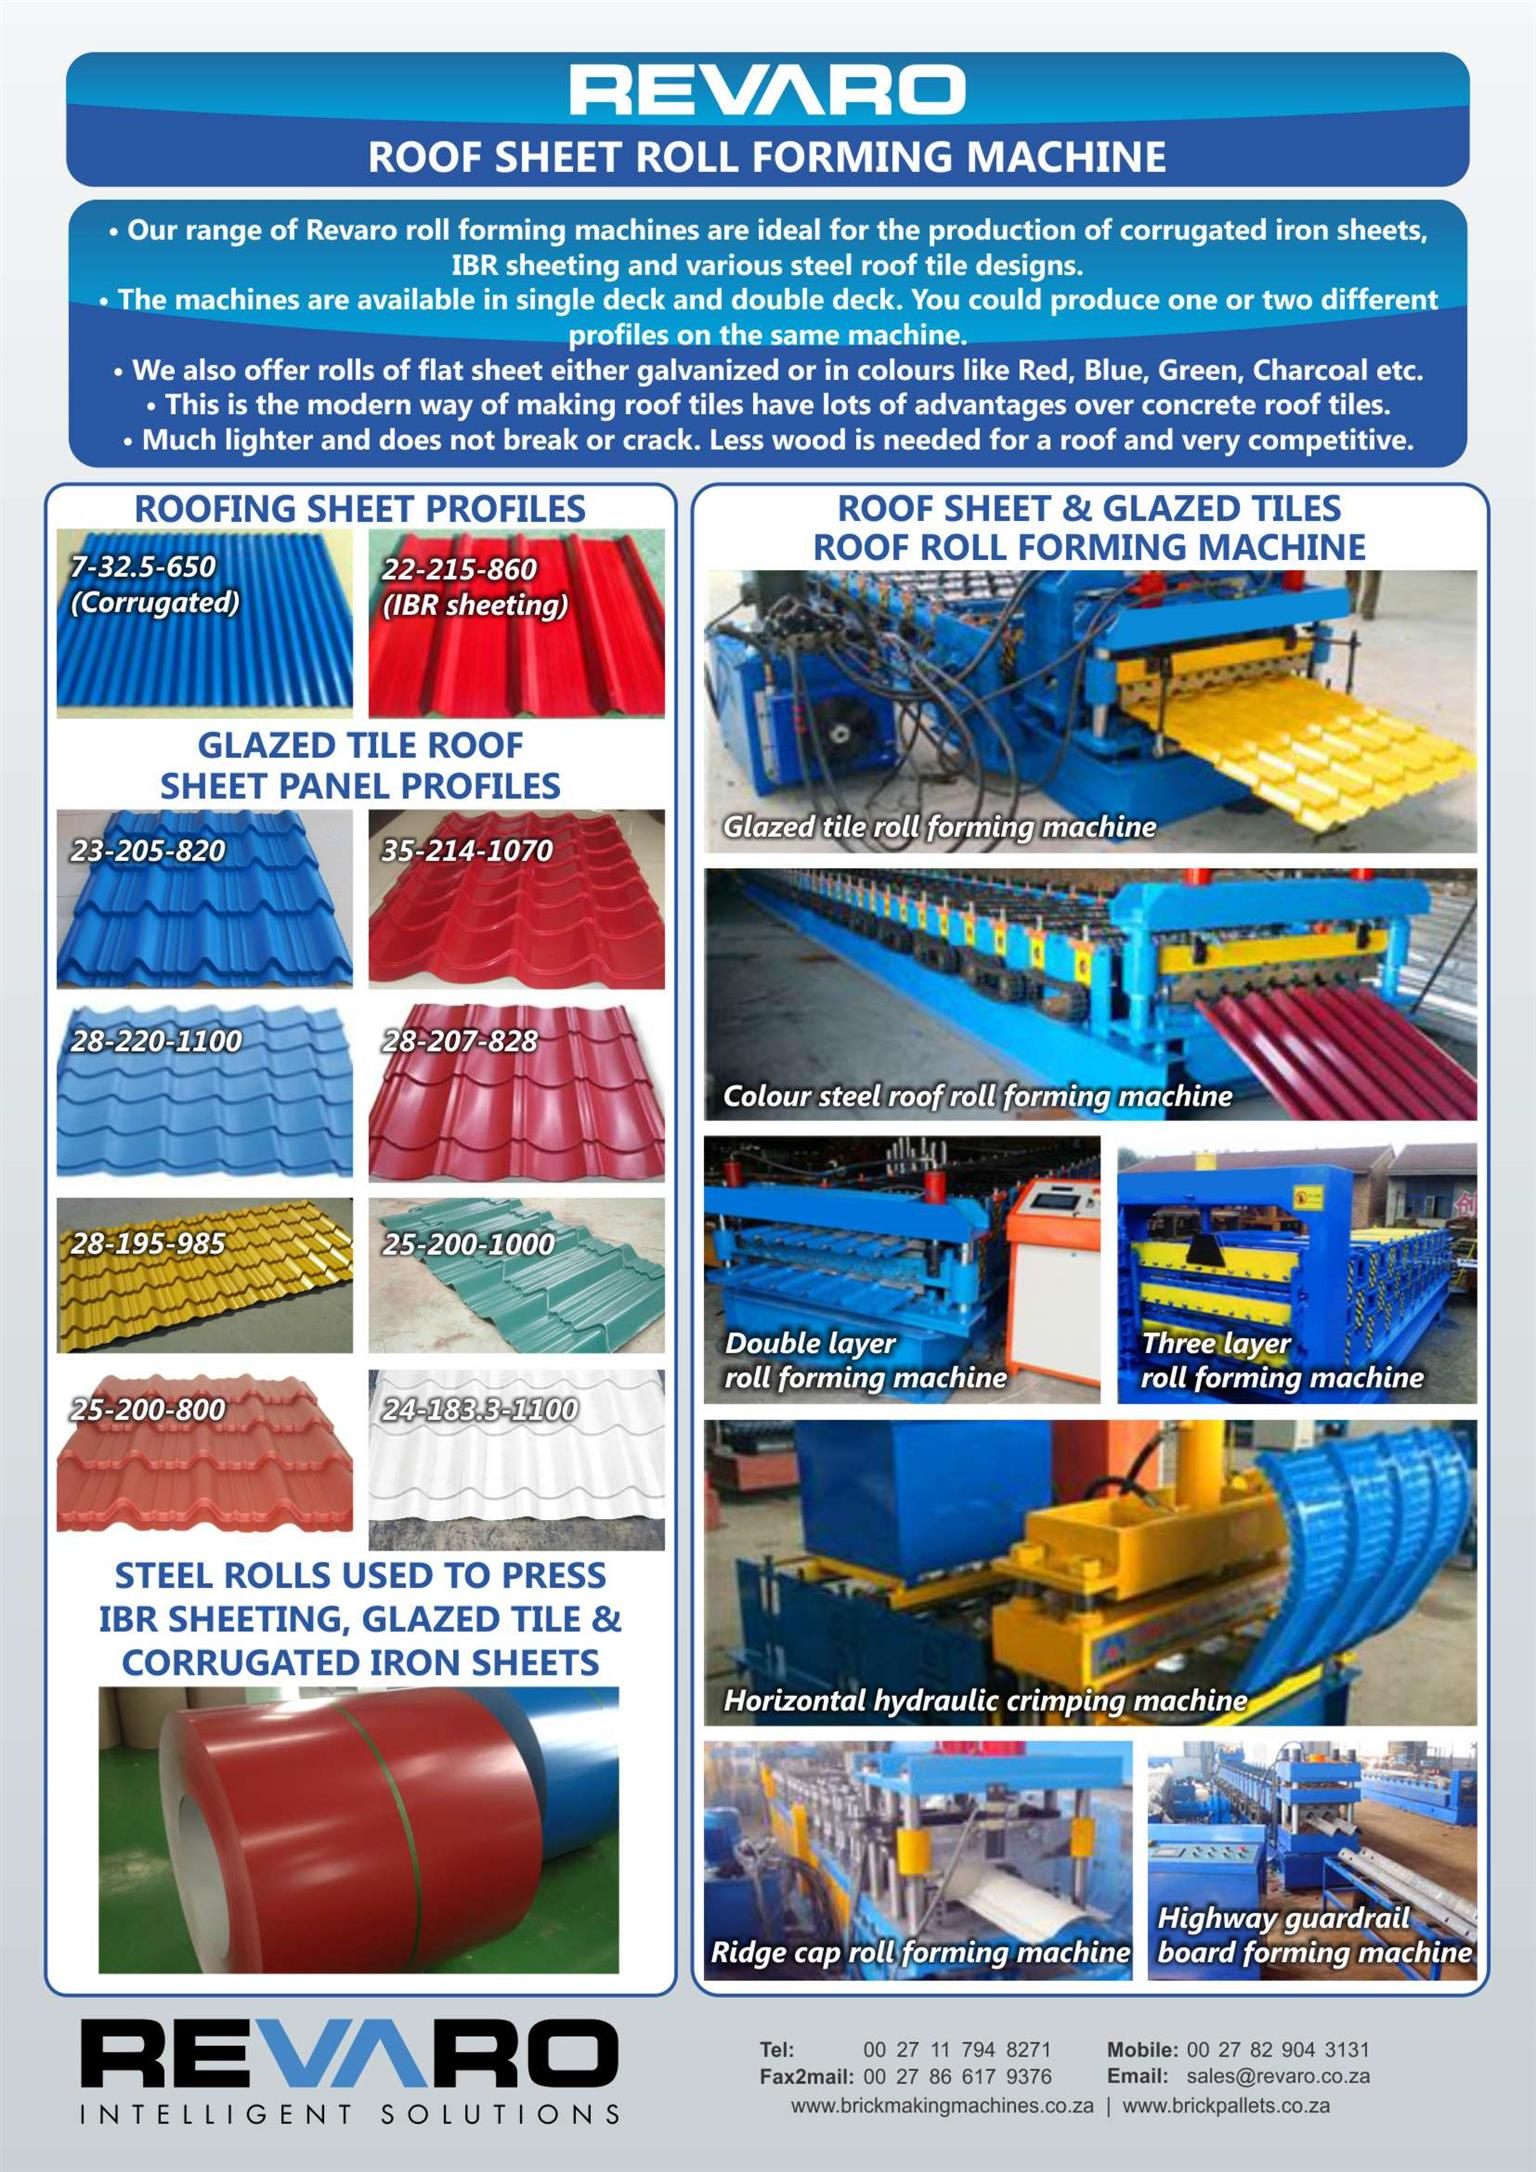 Roll forming machine for production of galvanised and colour roof shhet and roof tiles